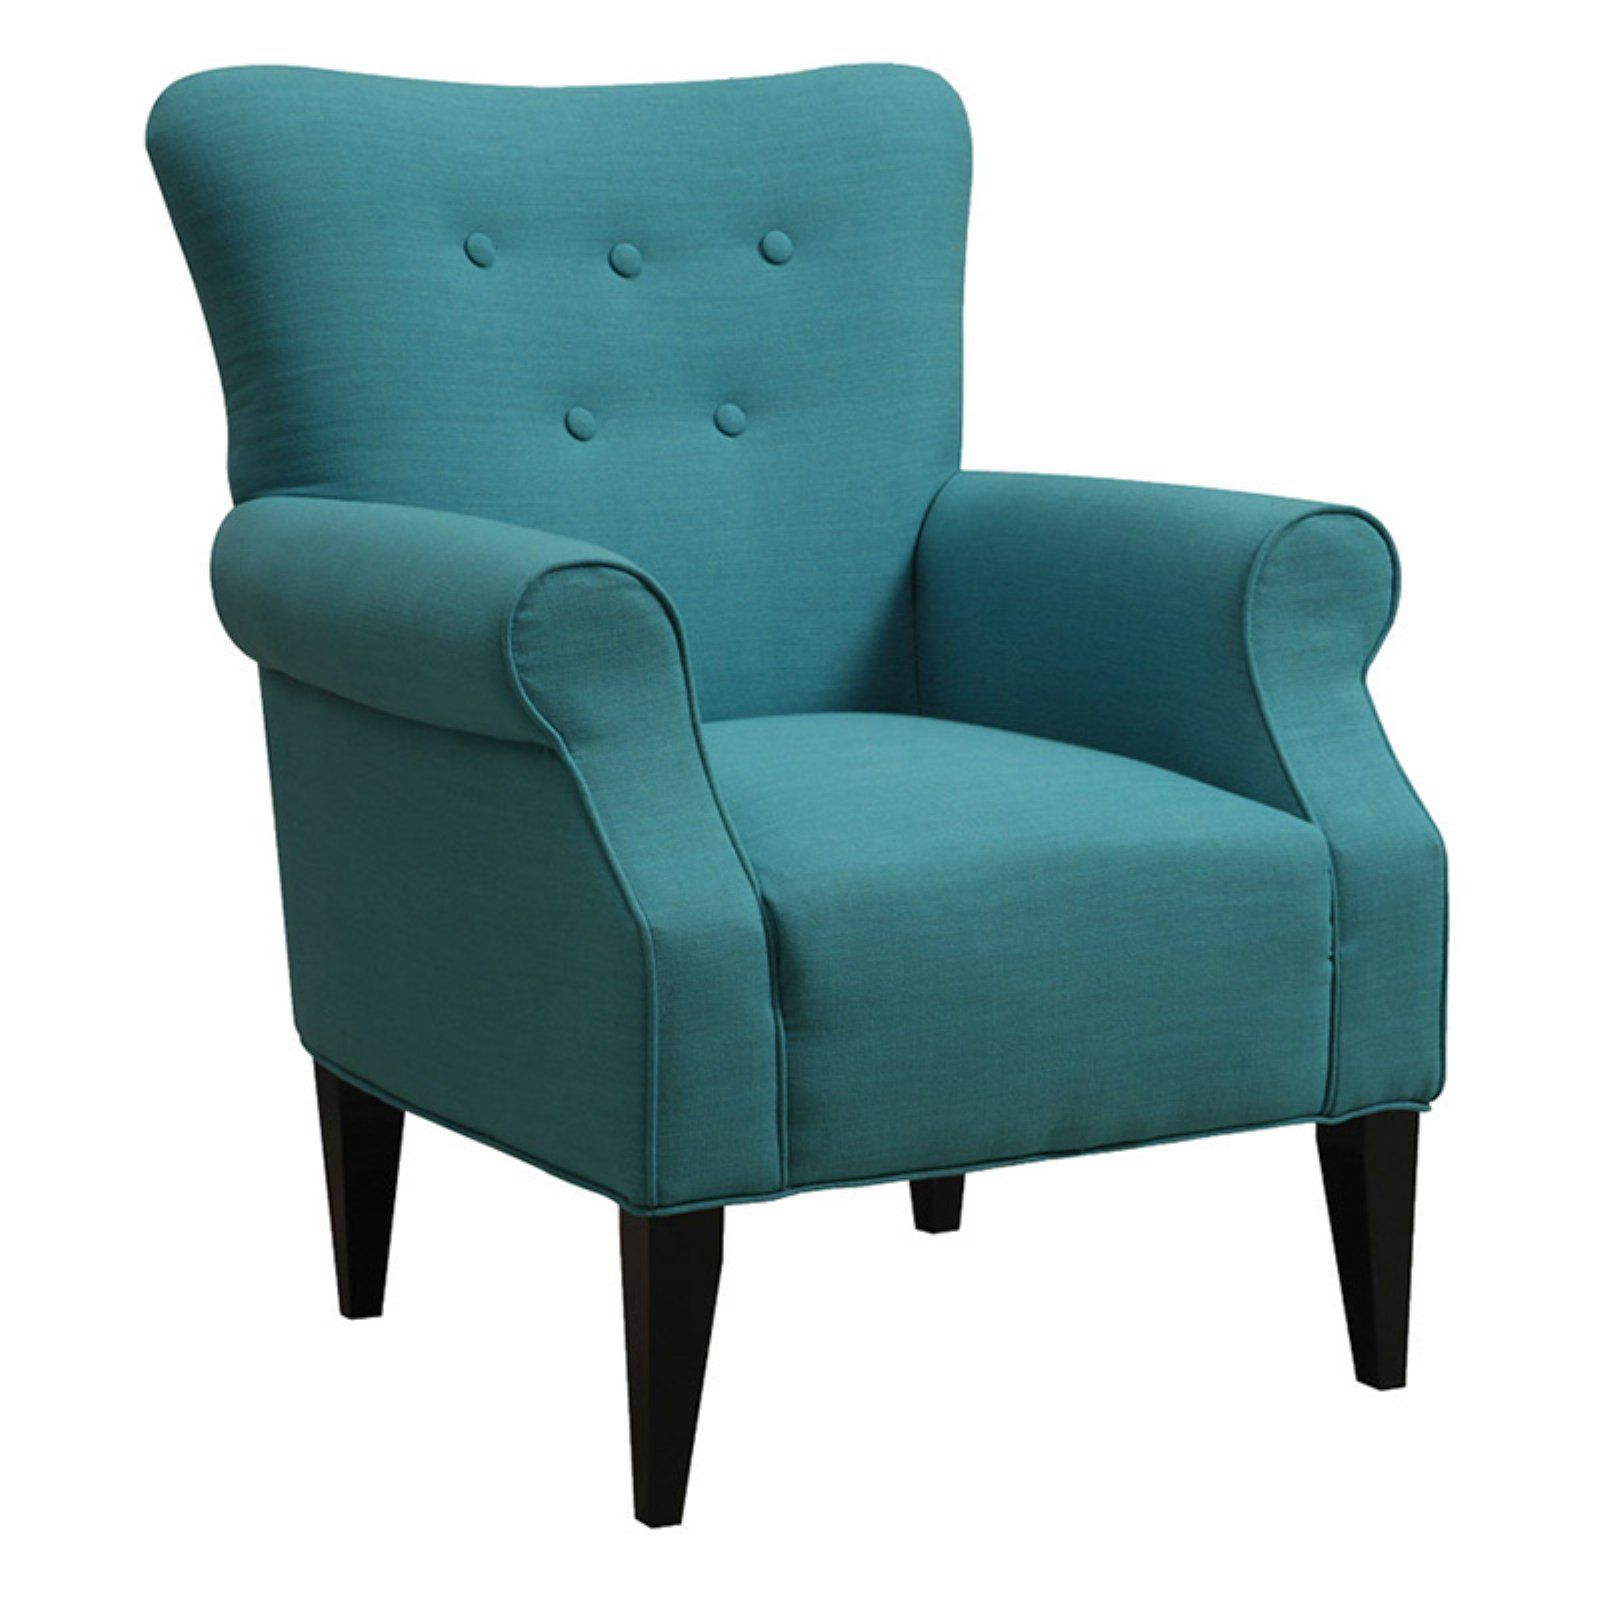 Best Emerald Home Lydia Neon Button Back Accent Chair Teal Armchair Cozy Chair Furniture 400 x 300